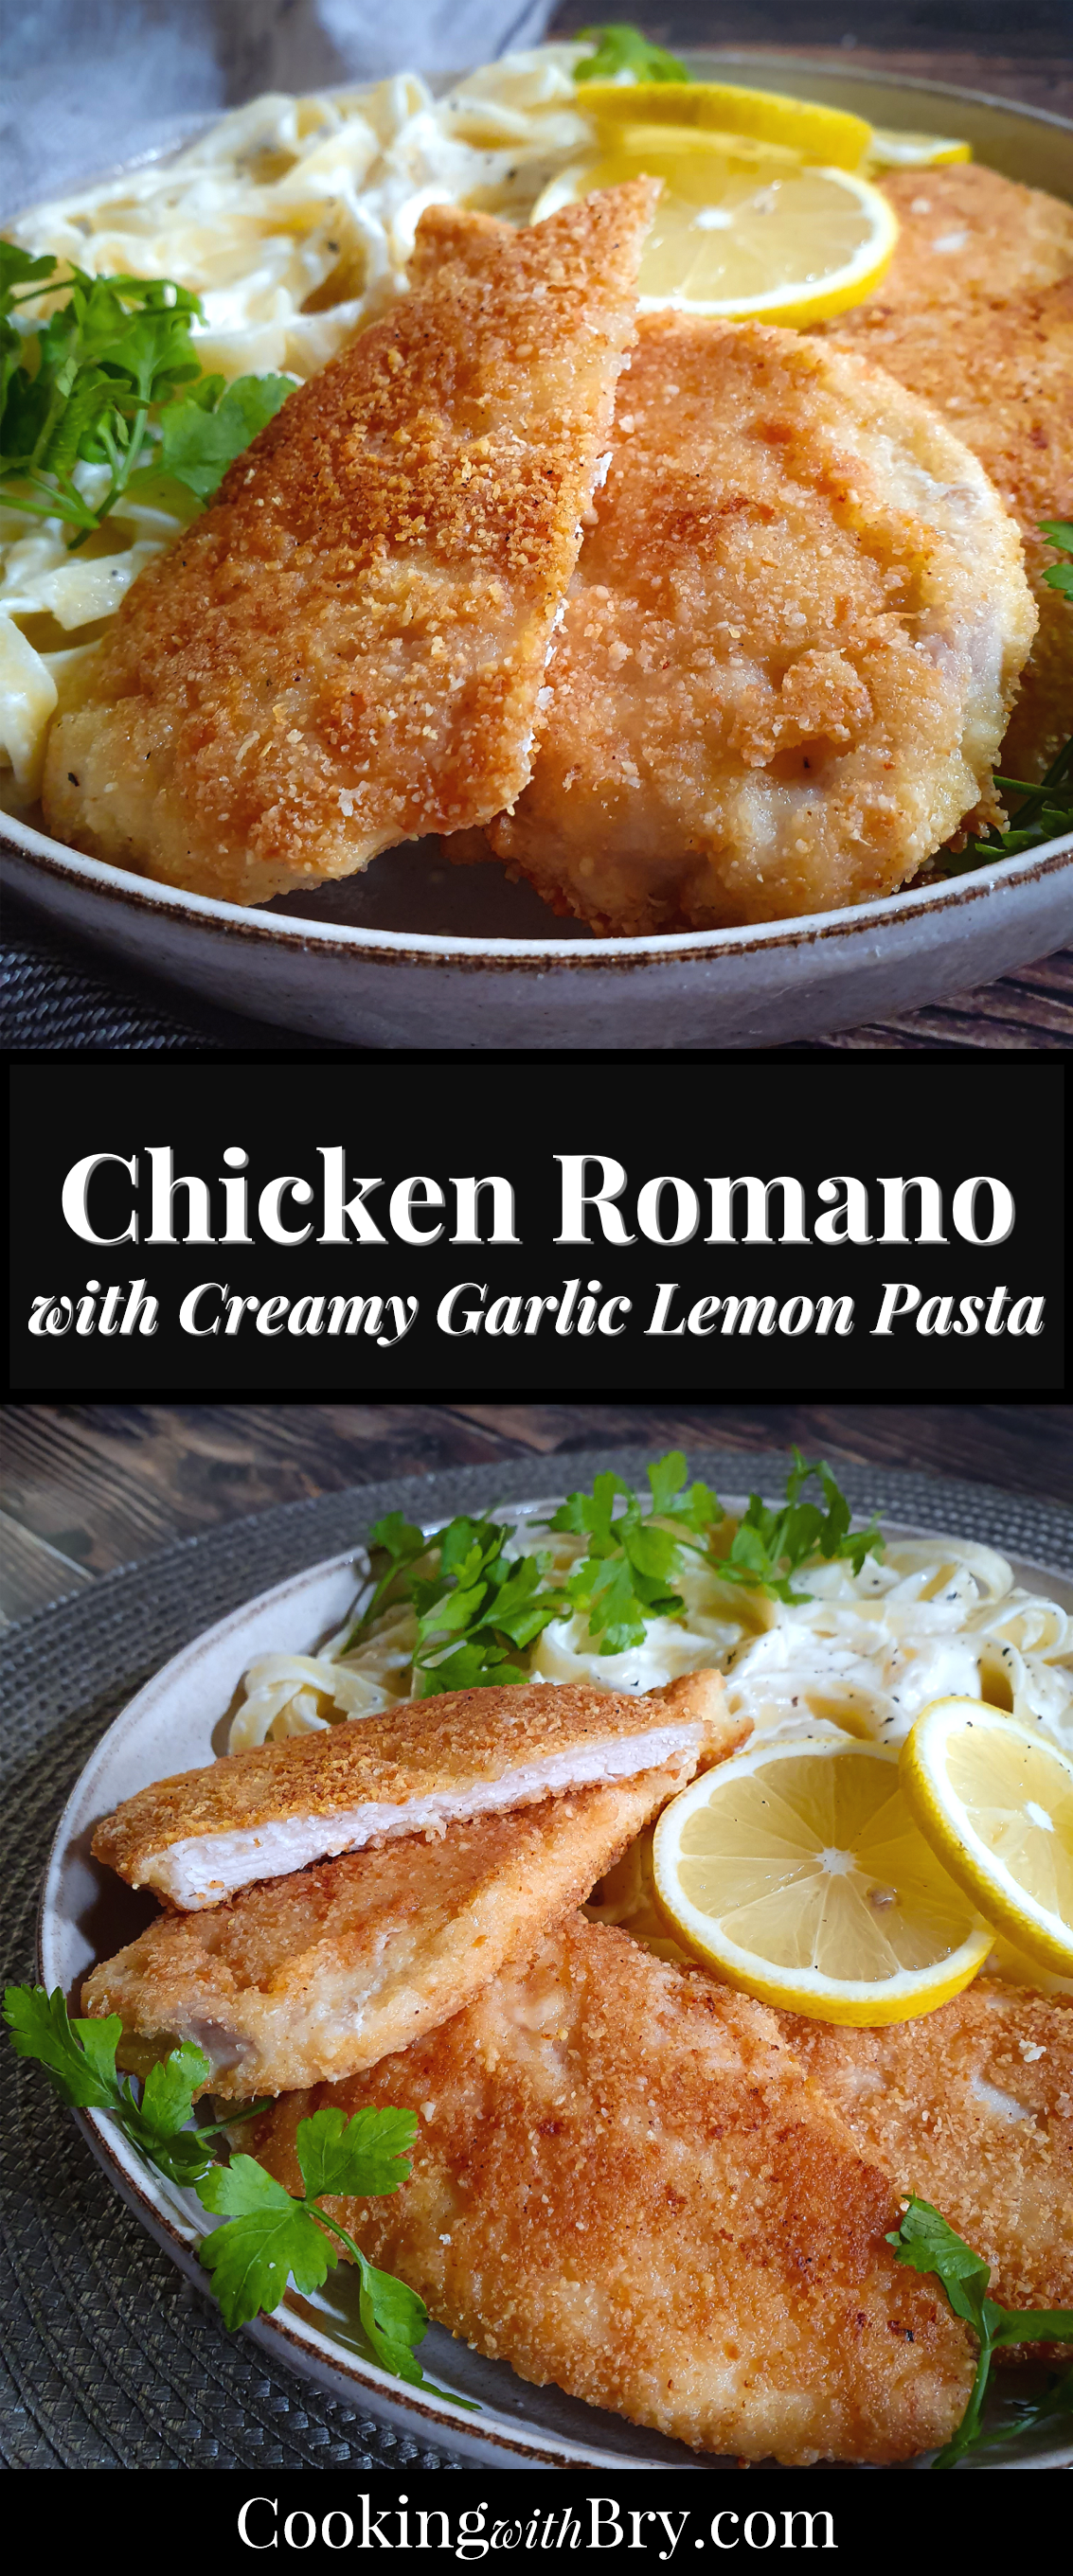 Photo of Chicken Romano with Creamy Lemon Pasta   Cooking with Bry